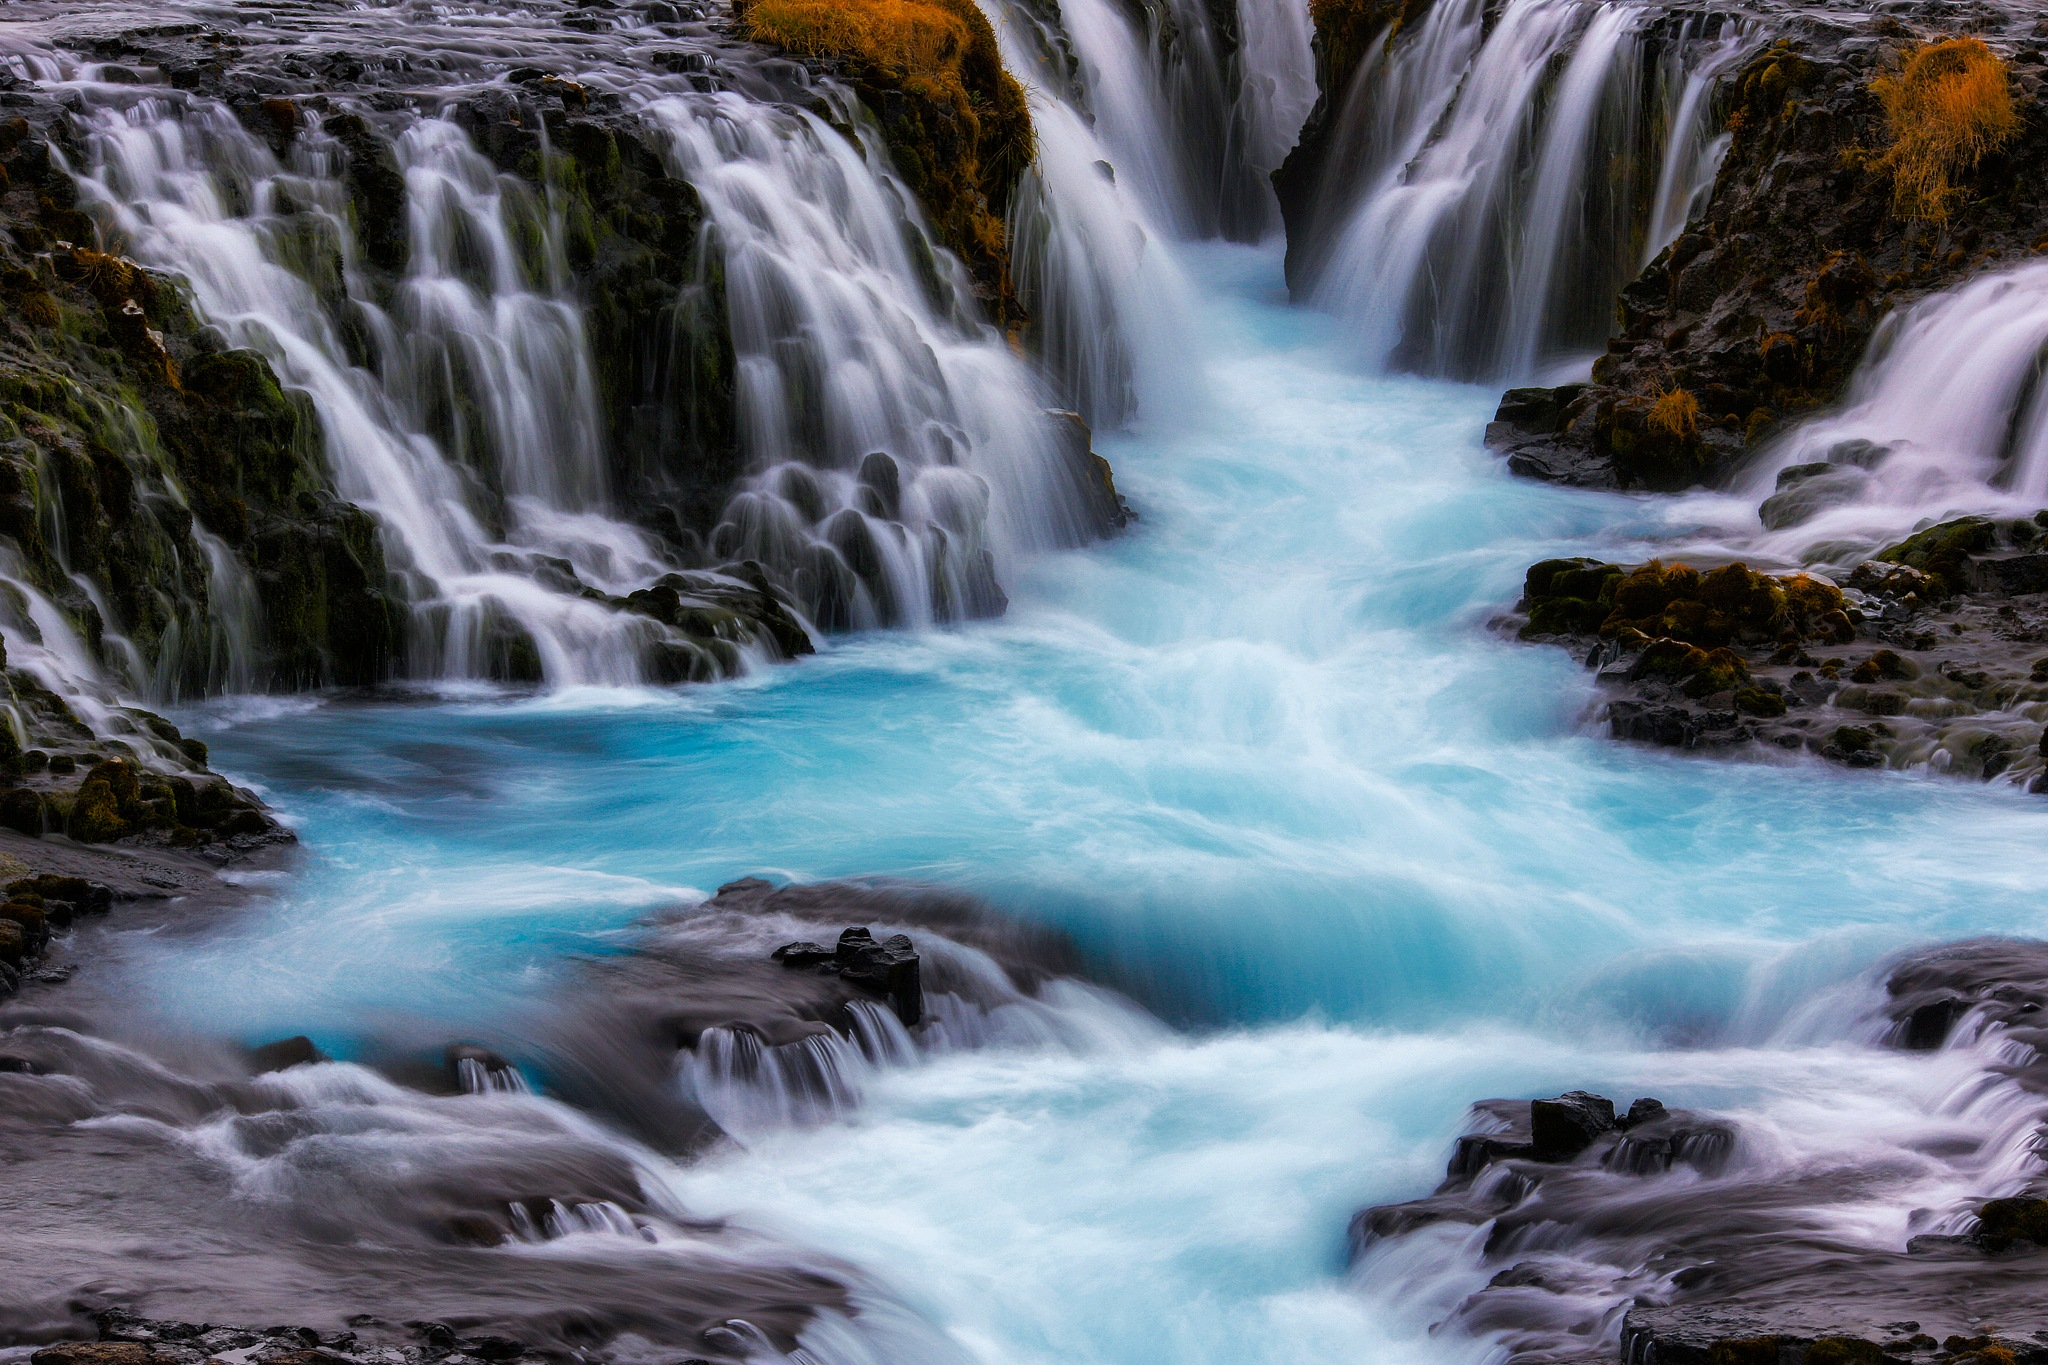 The Blue Waterfall by Yiannis Pavlis172